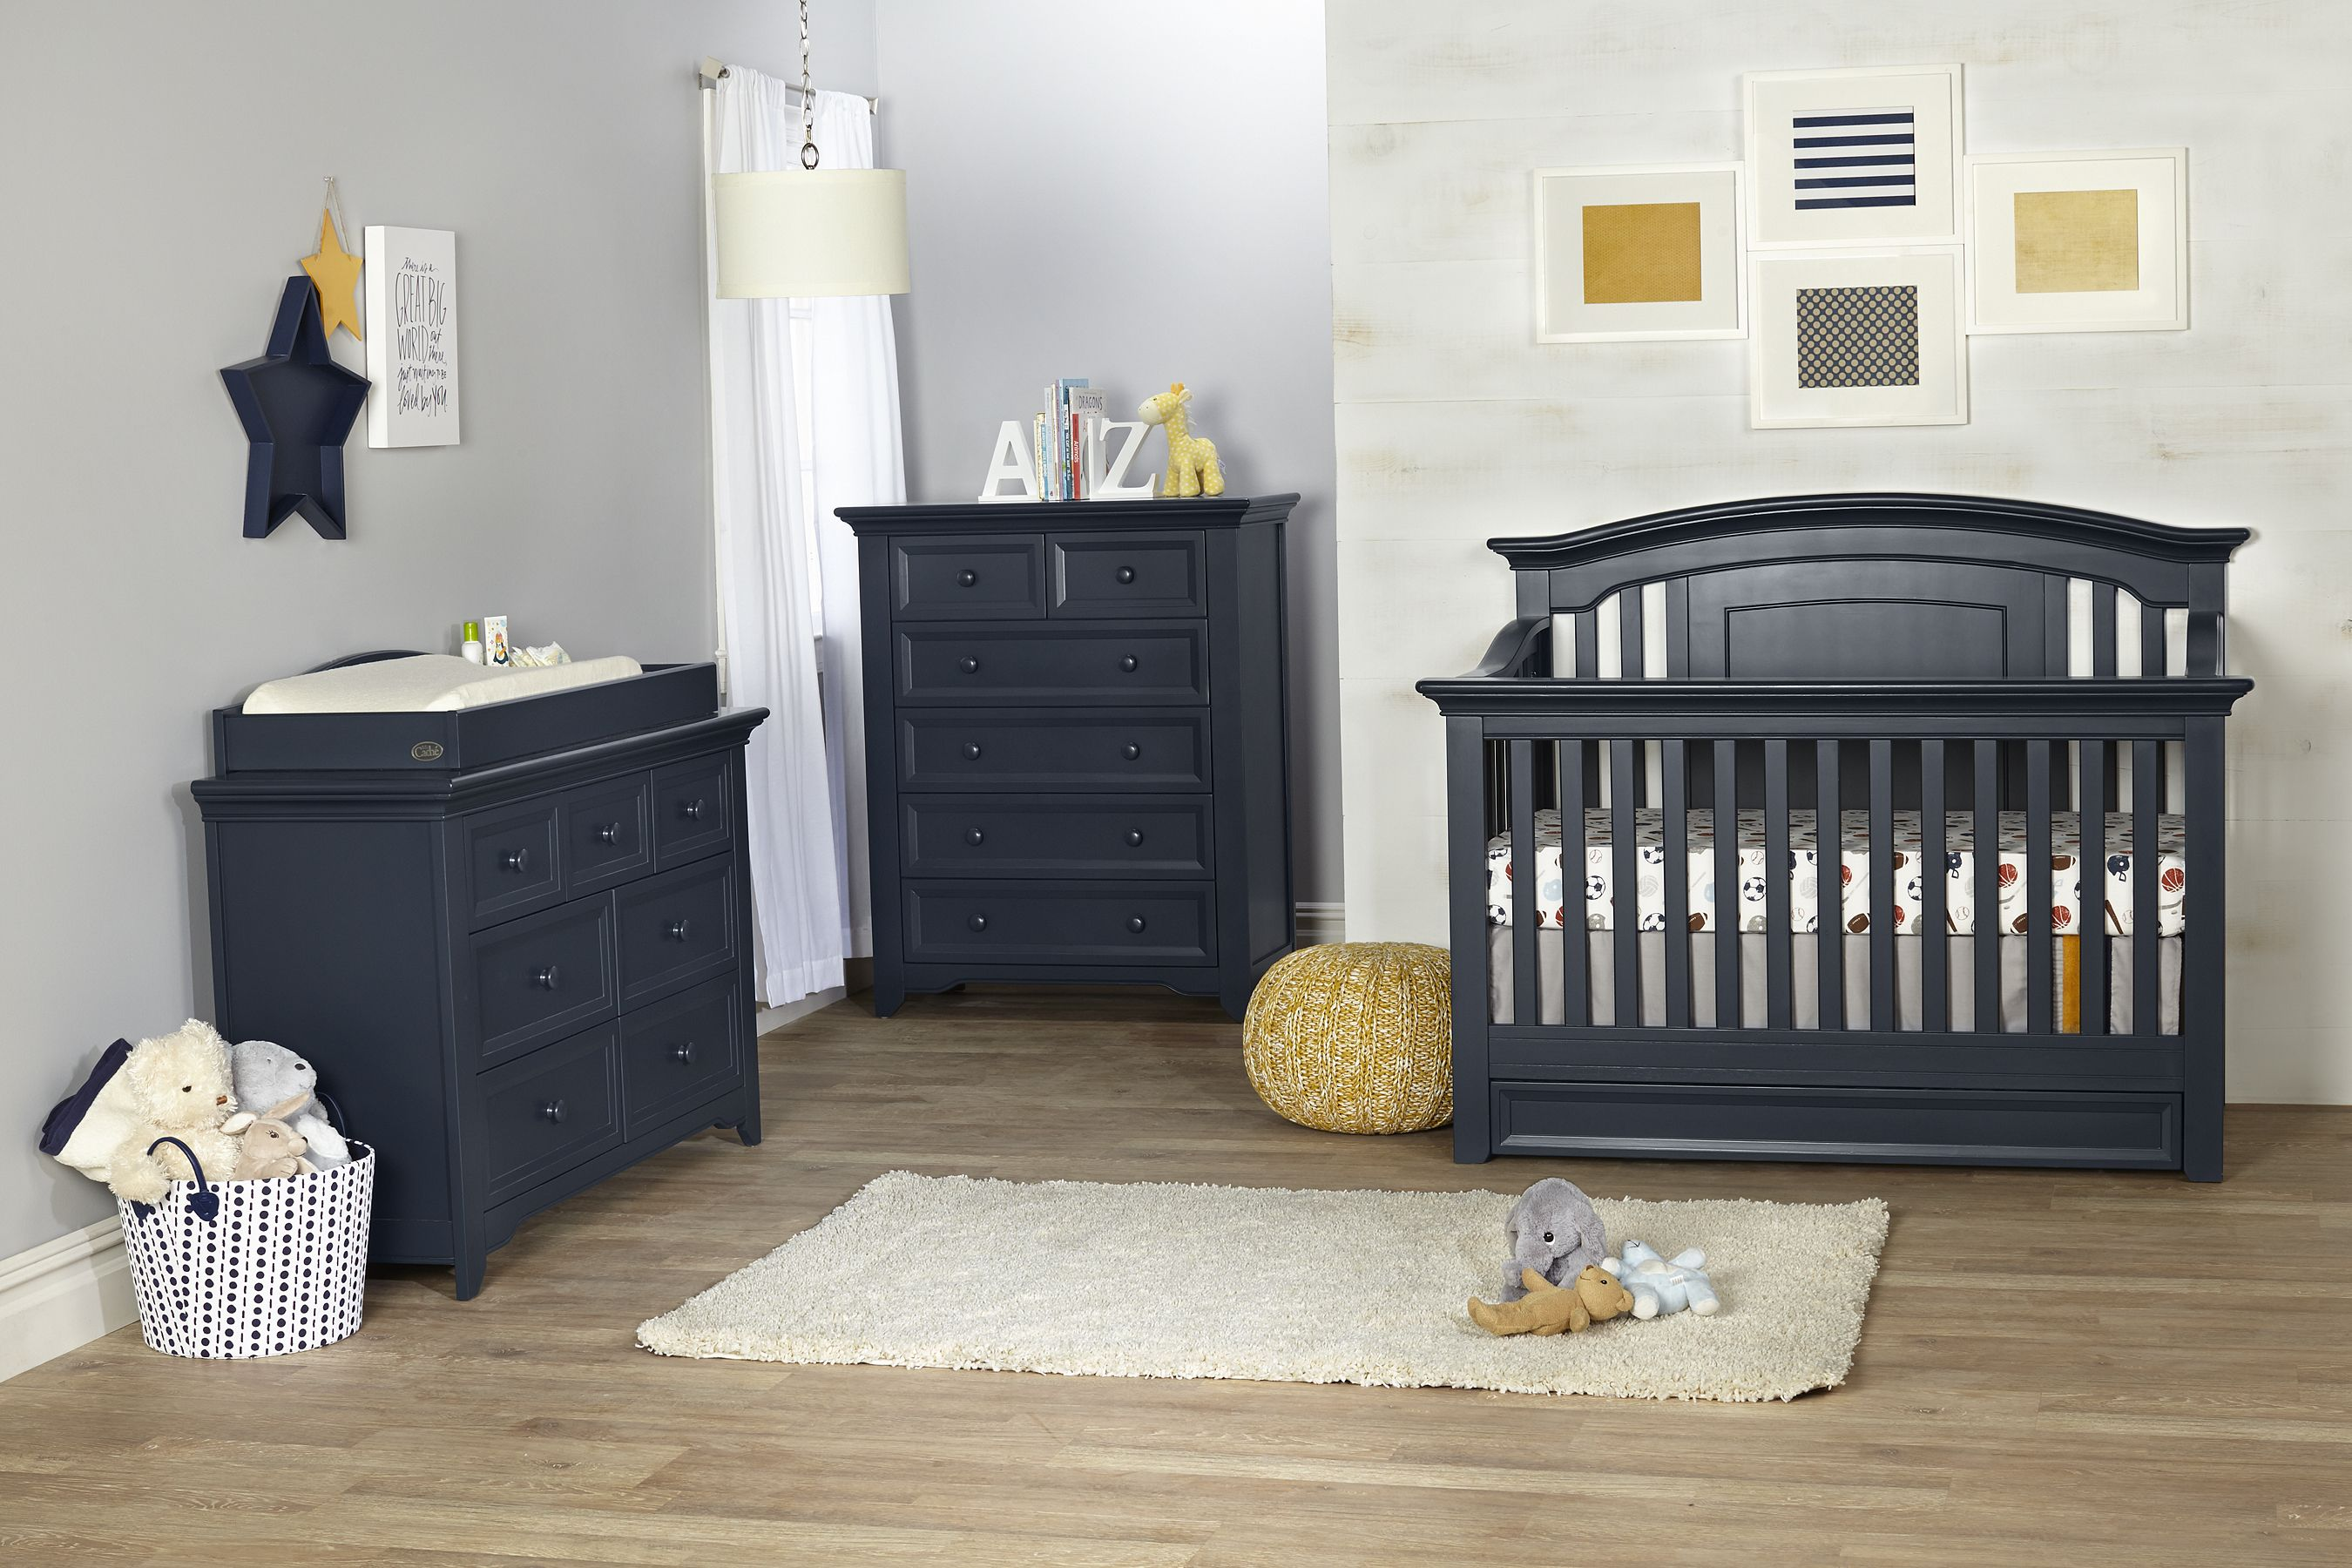 Harbor nursery furniture collection from baby cache in navy this is so transitional and can grow easily from baby to childhood and beyond pnpartner